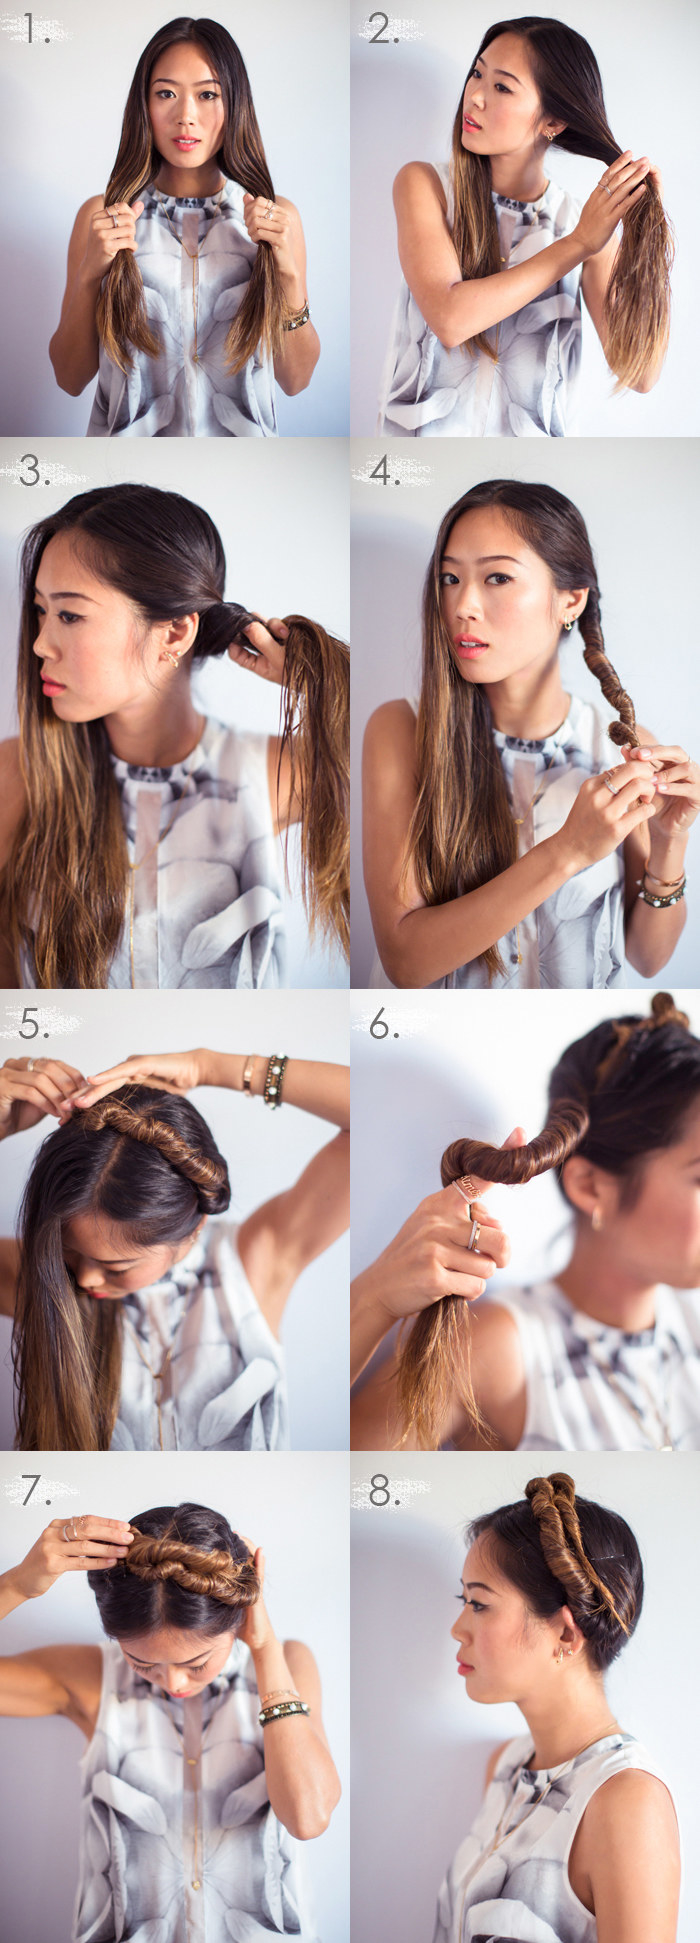 The tutorial for twisting hair to get beach waves